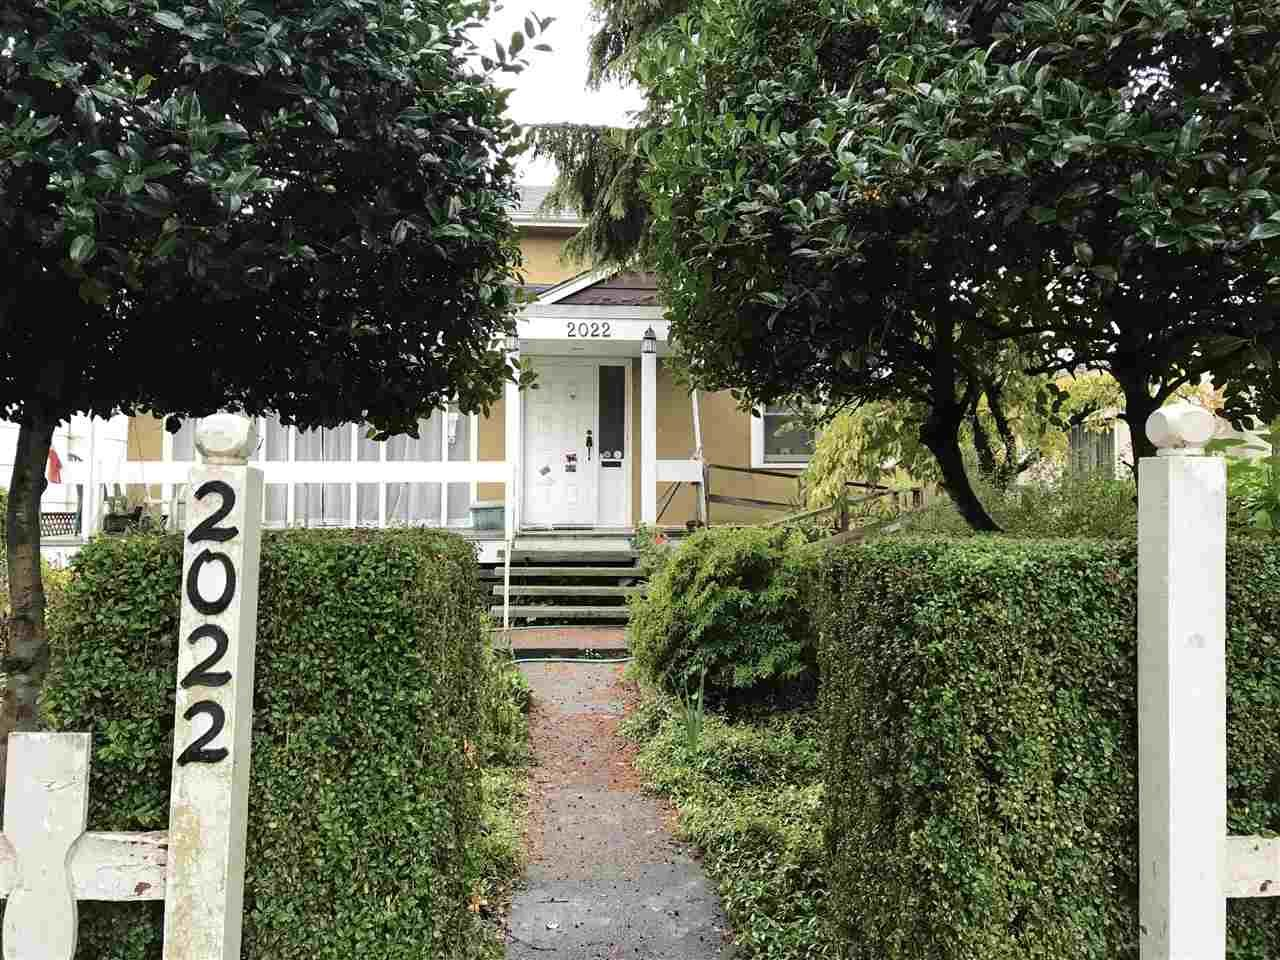 Main Photo: 2022 W 61ST Avenue in Vancouver: S.W. Marine House for sale (Vancouver West)  : MLS®# R2216054